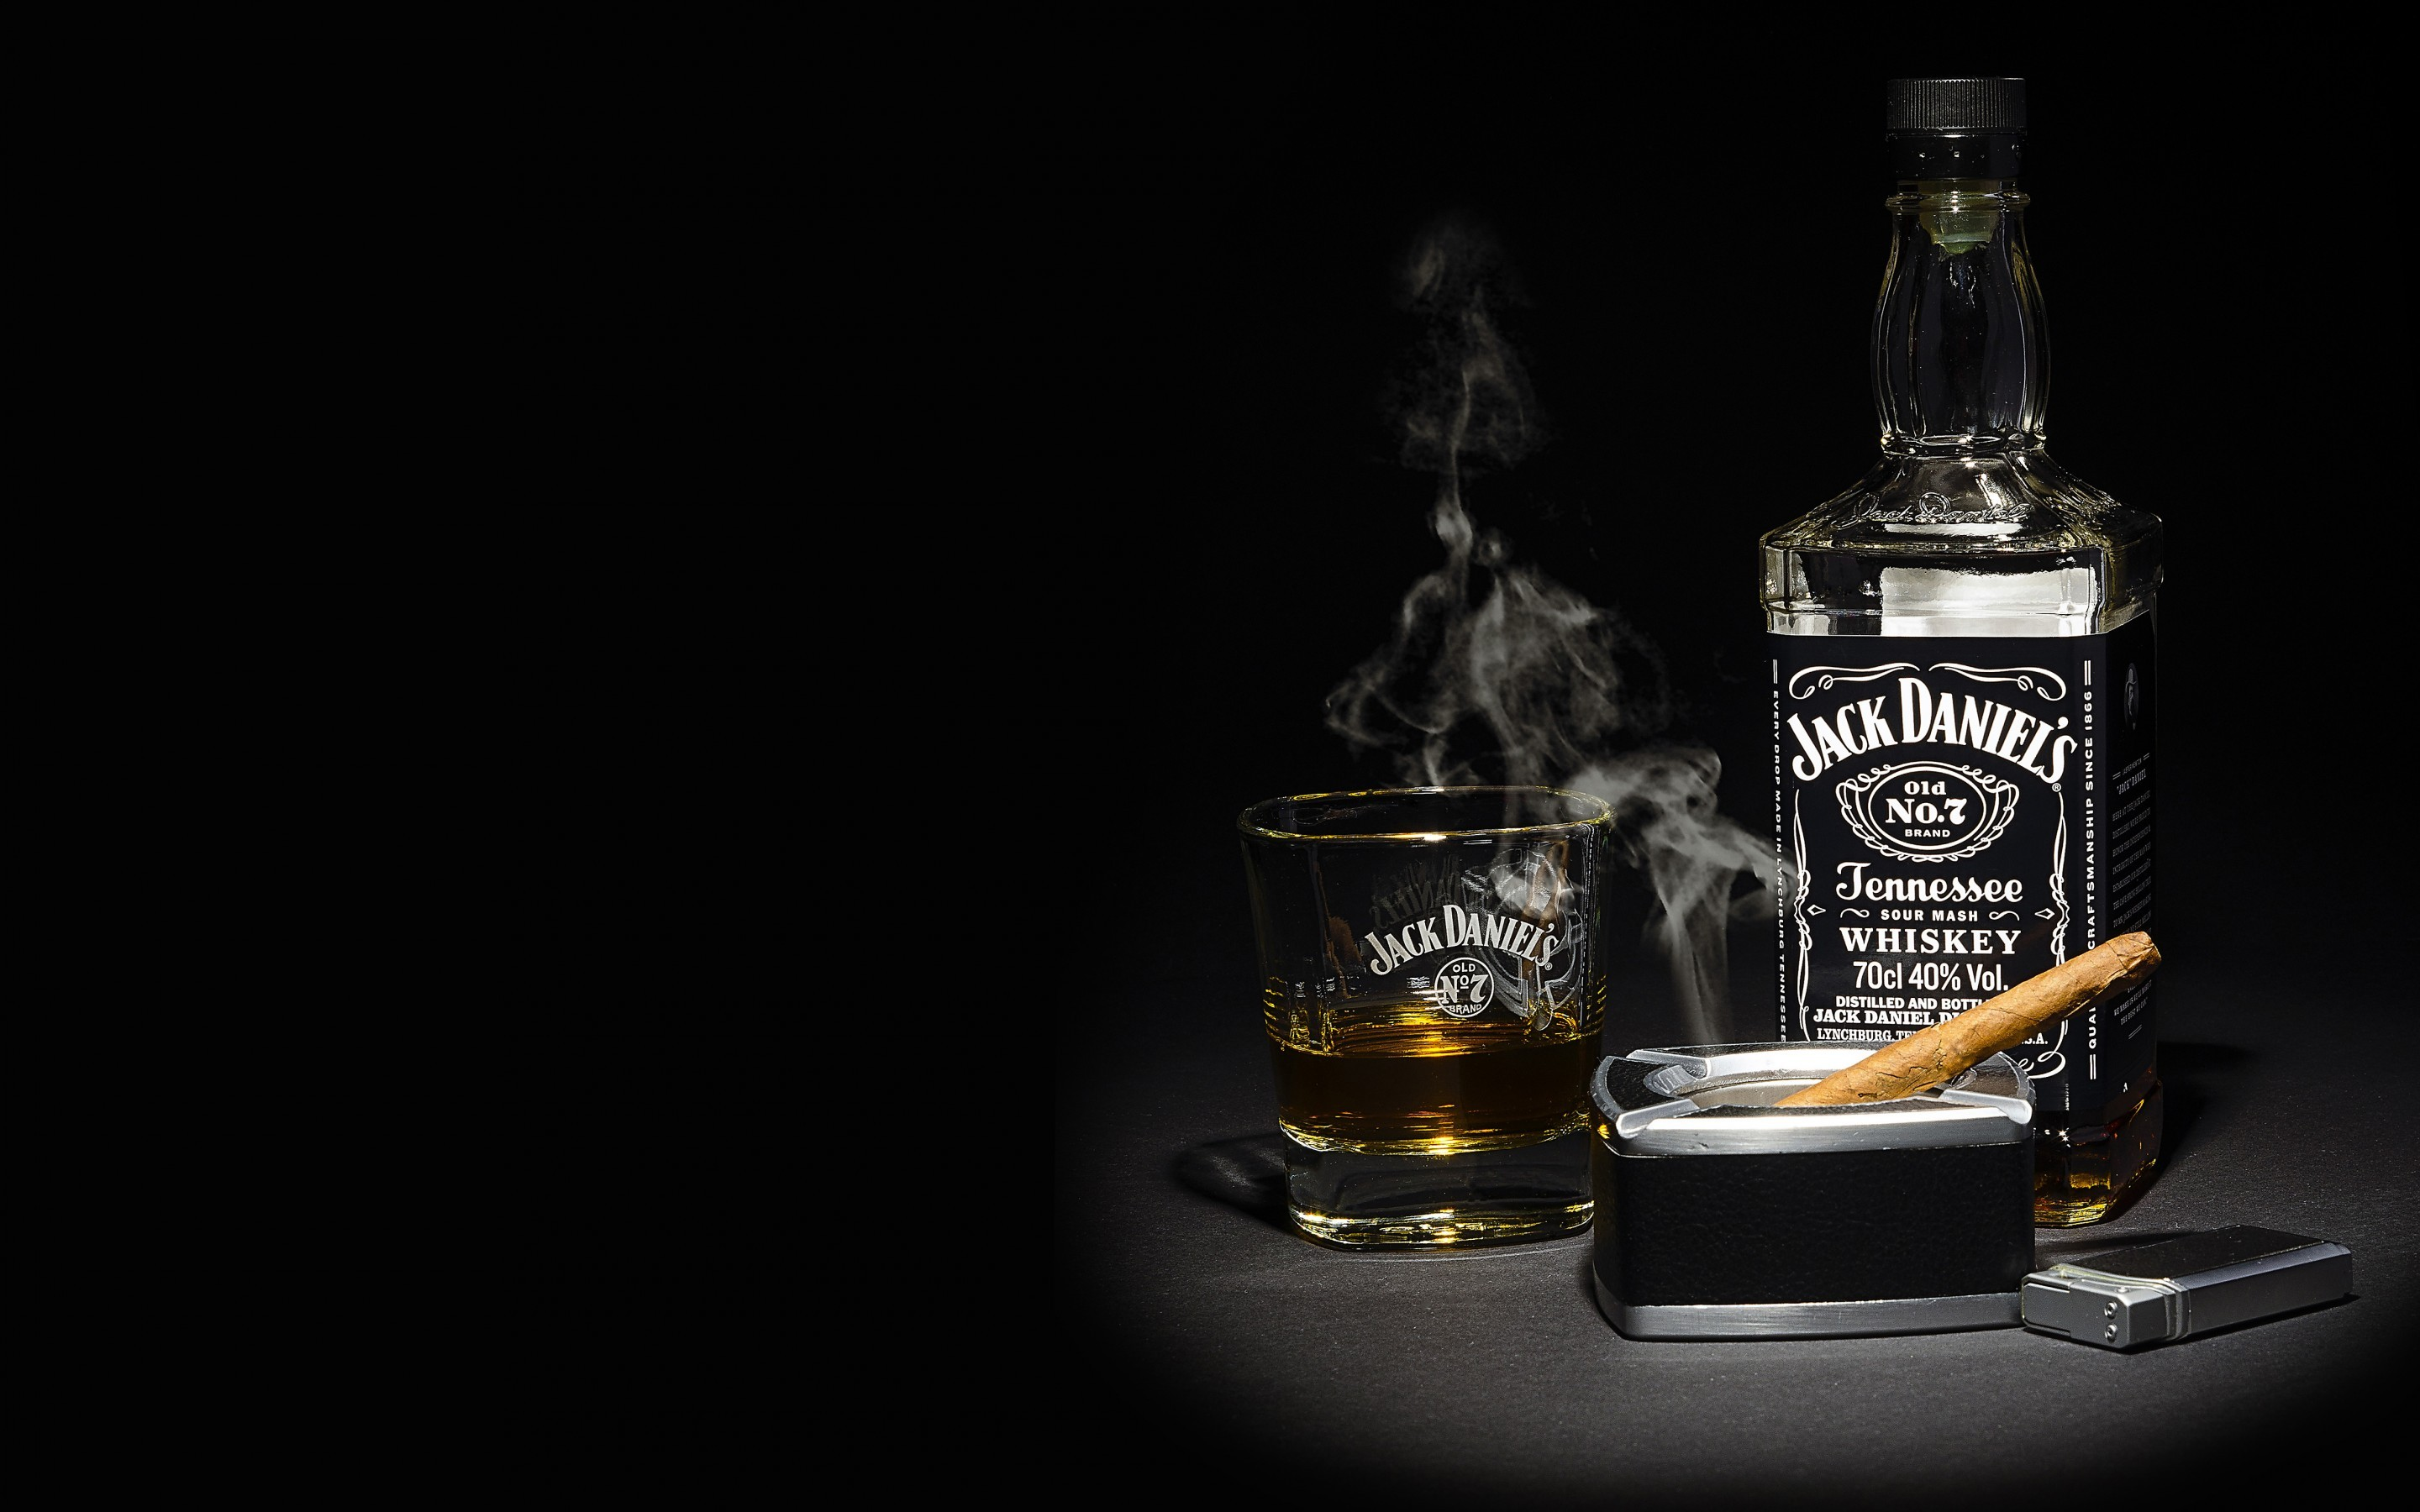 1366x768 jack daniels whiskey 1366x768 resolution hd 4k wallpapers jack daniels whiskey 1366x768 resolution voltagebd